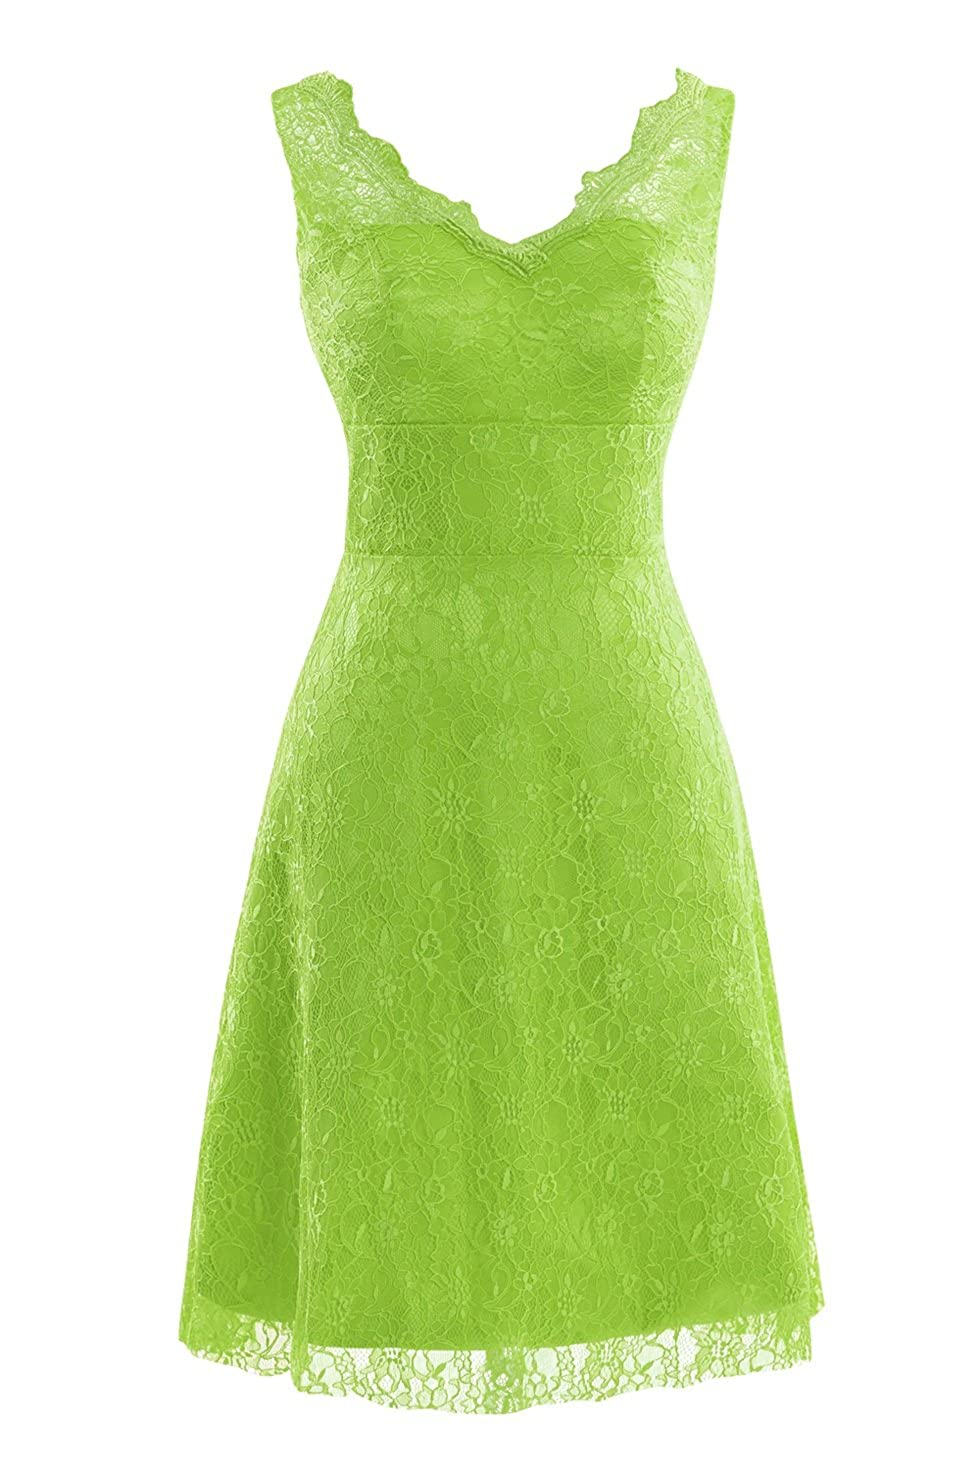 Lime Green Bess Bridal Women's V Neck Lace Knee Length Prom Party Dresses